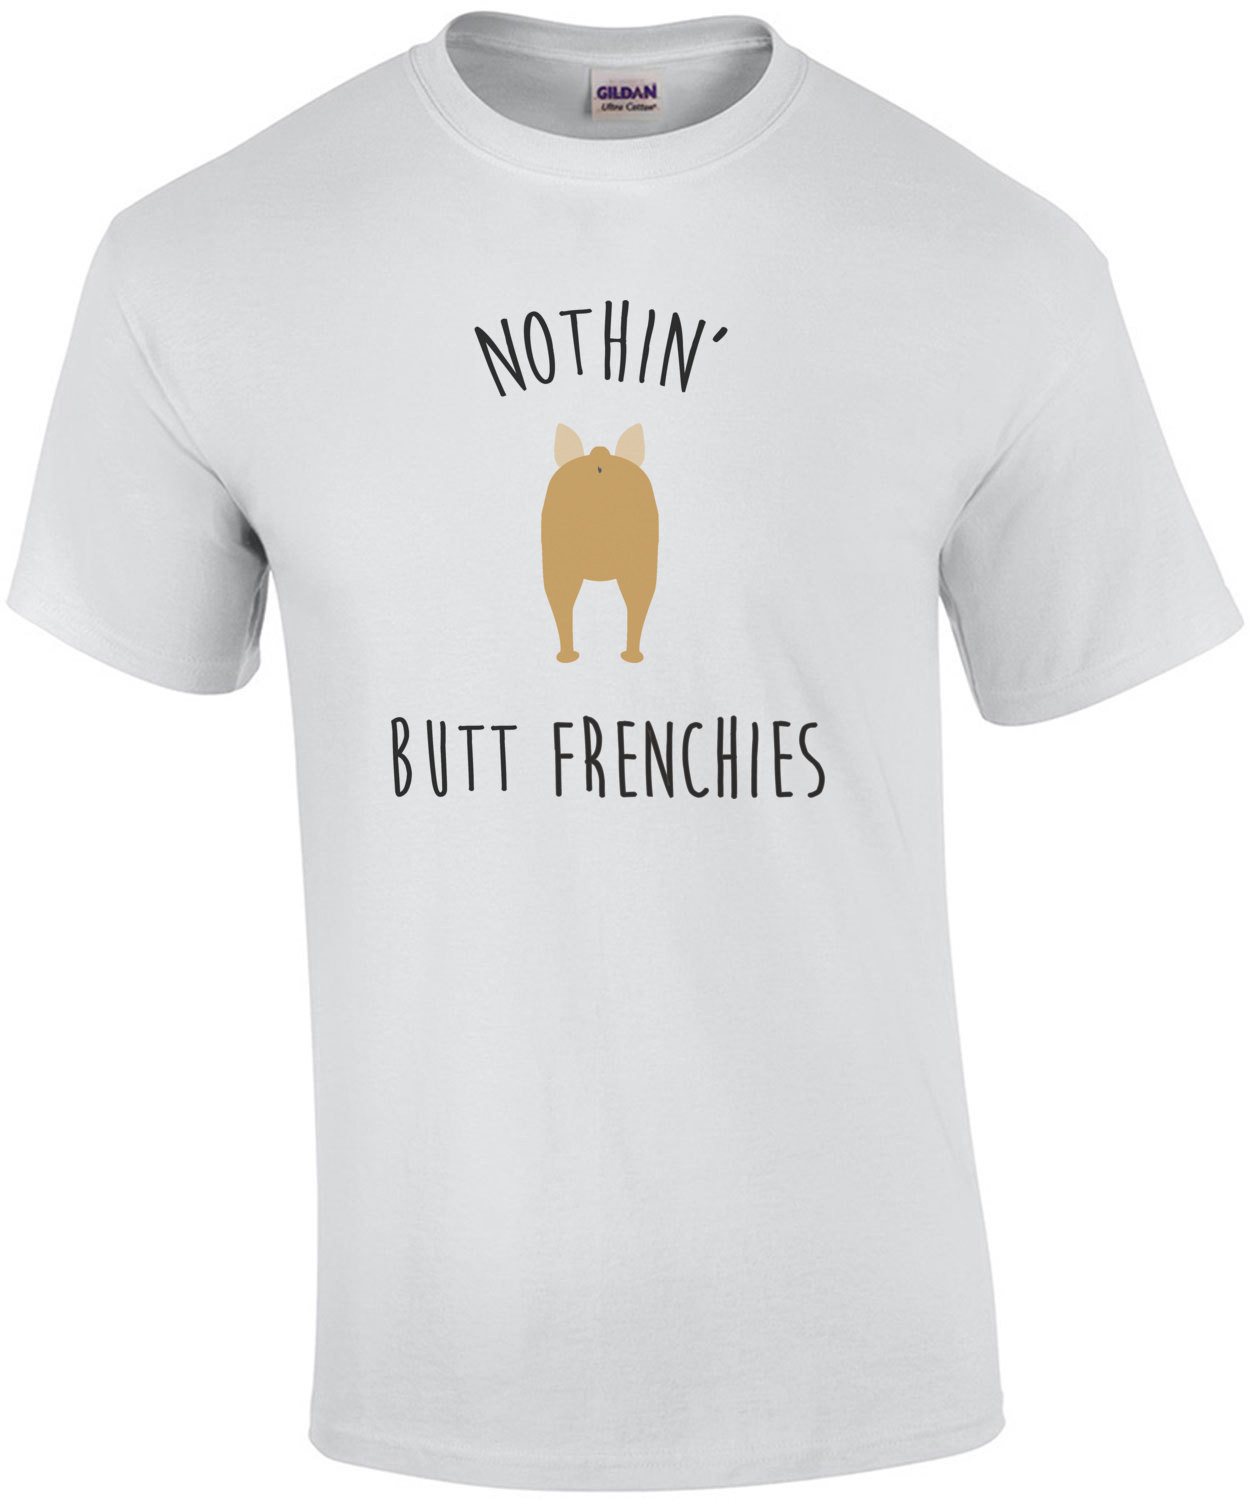 Nothin' Butt Frenchies - Frenchie / French Bulldog t-shirt